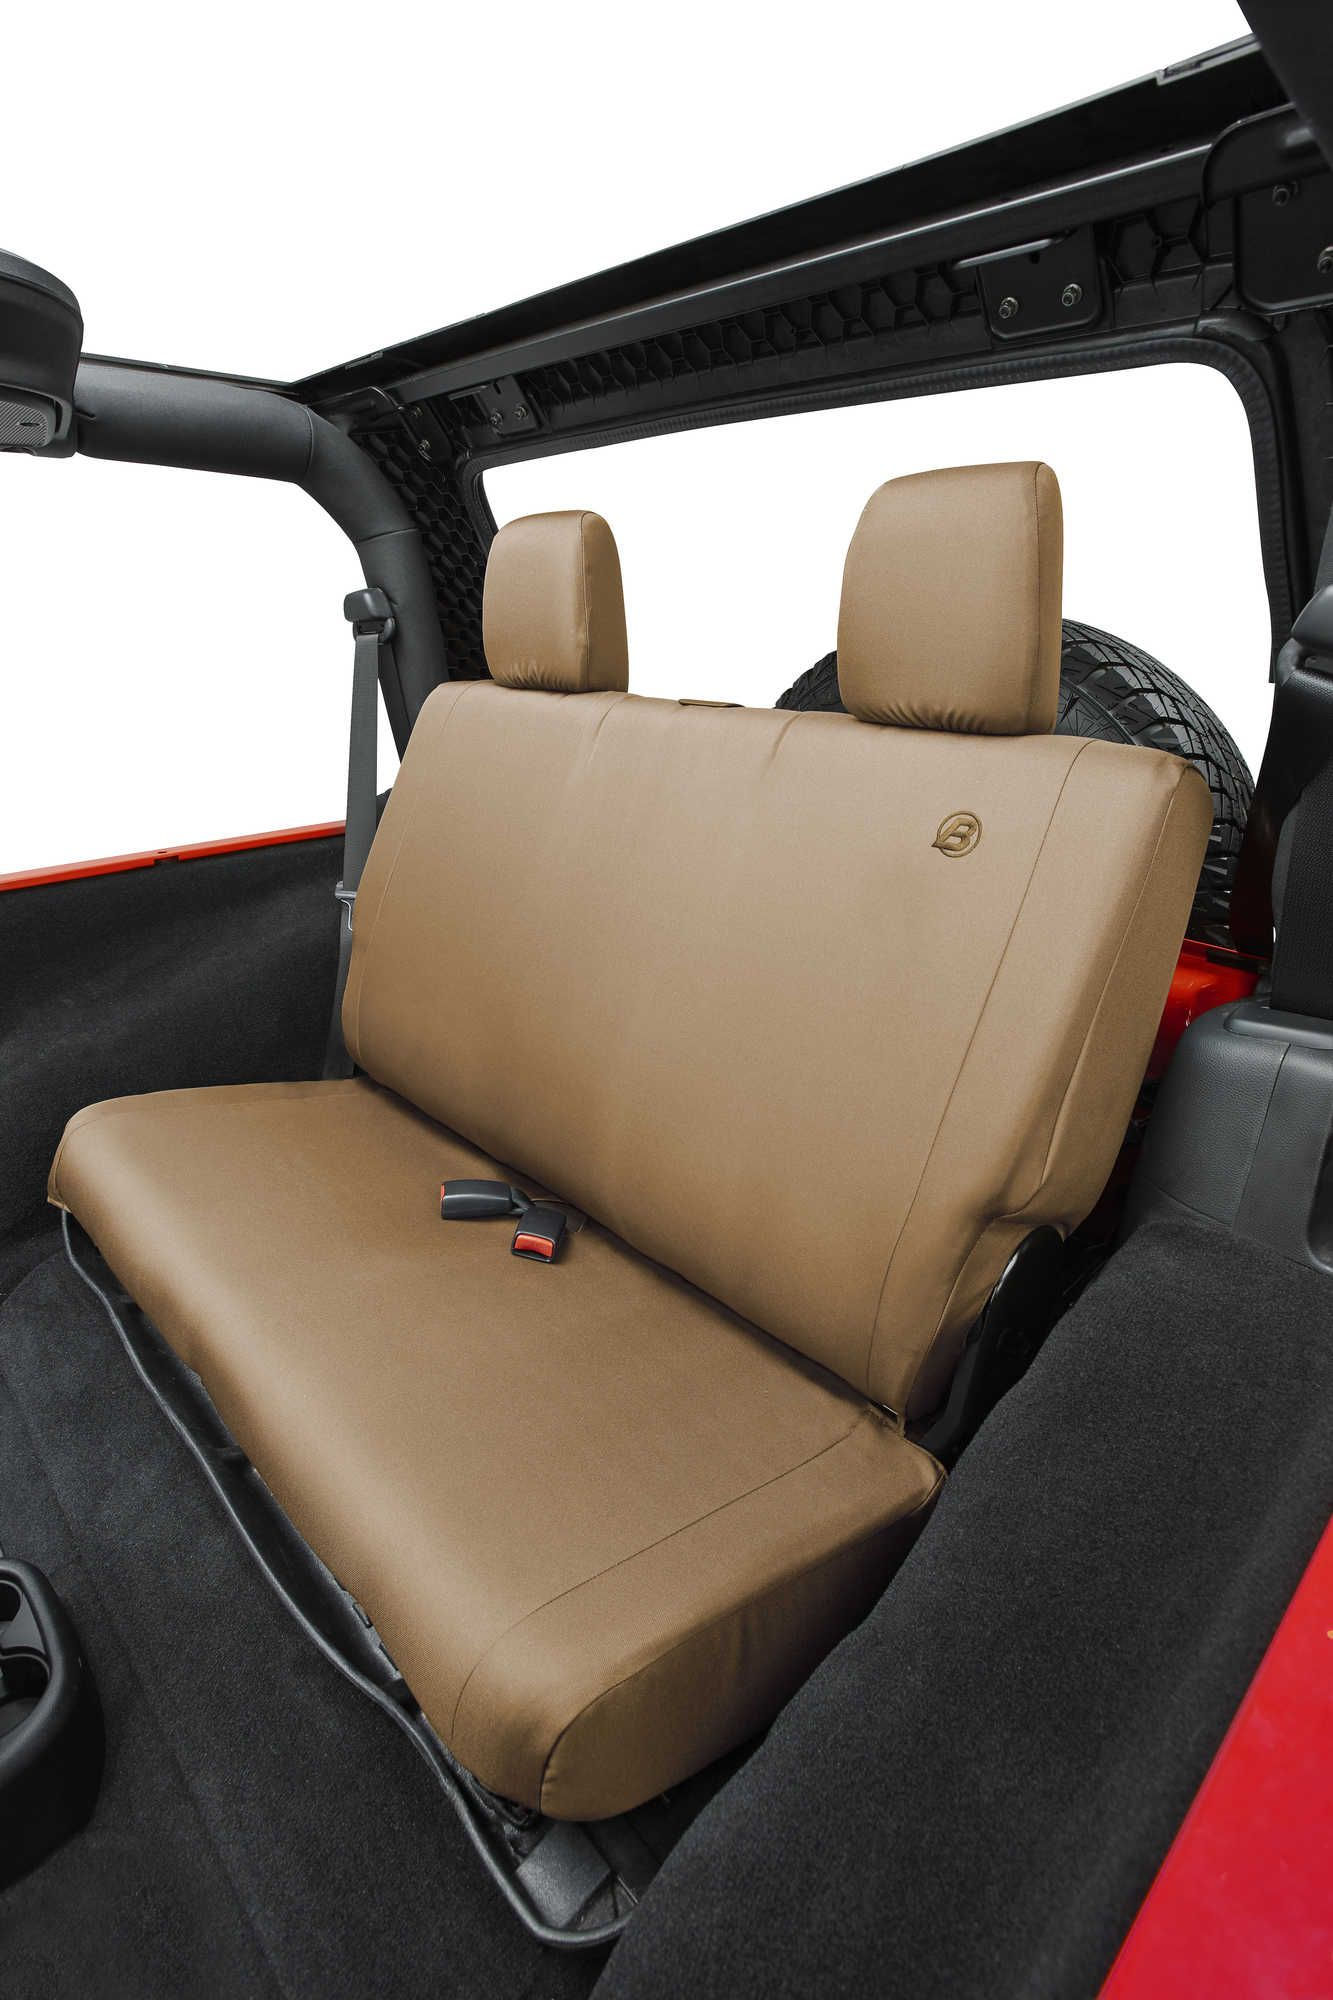 Bestop Custom Tailored Rear Seat Cover For 07 18 Jeep Wrangler Jk 2 Door Jeep Wrangler Jeep Jk Accessories Jeep Wrangler Jk